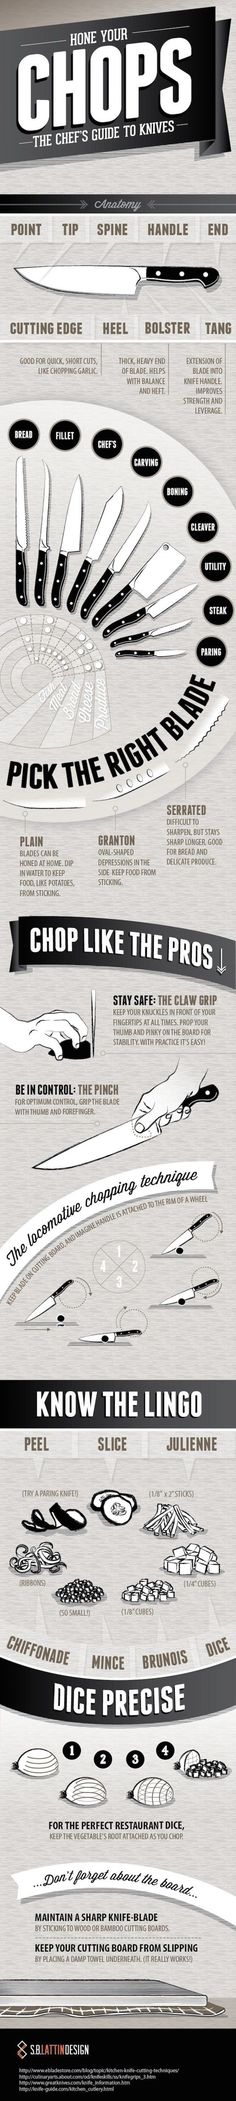 For knife skills. | 27 Diagrams That Make Cooking So Much Easier